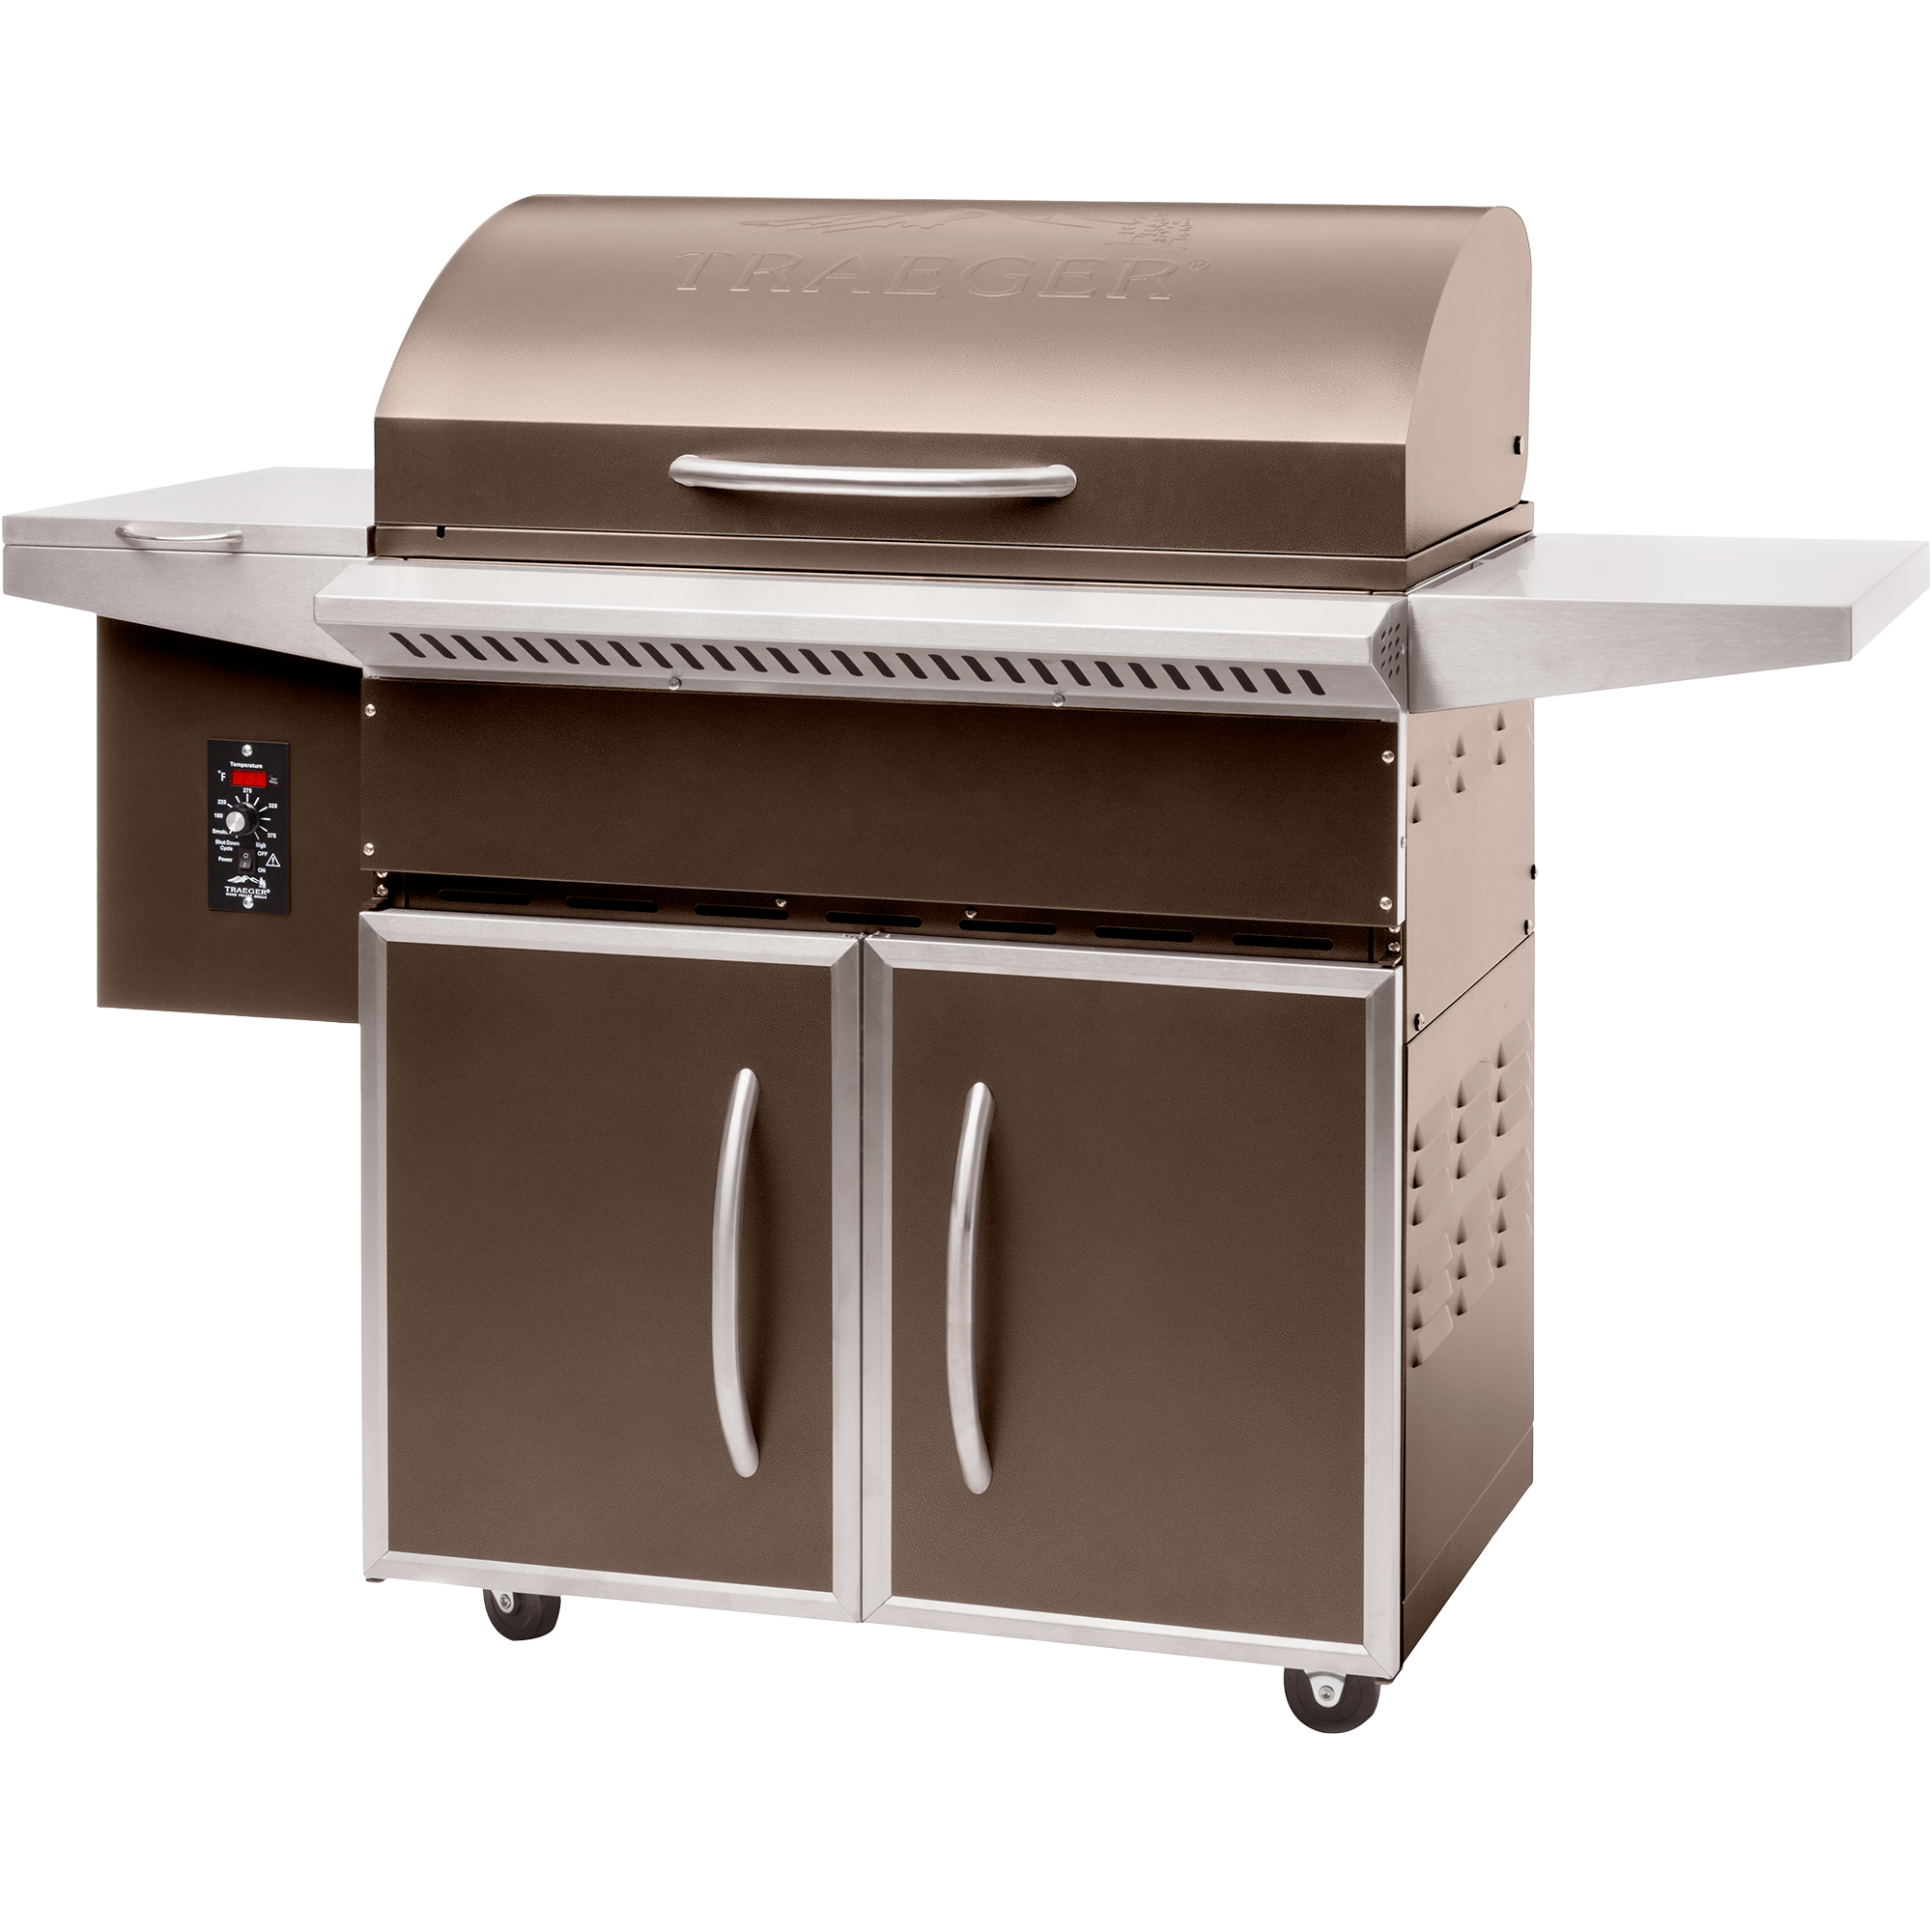 Outdoor Kitchen And Built In Grills Product Reviews